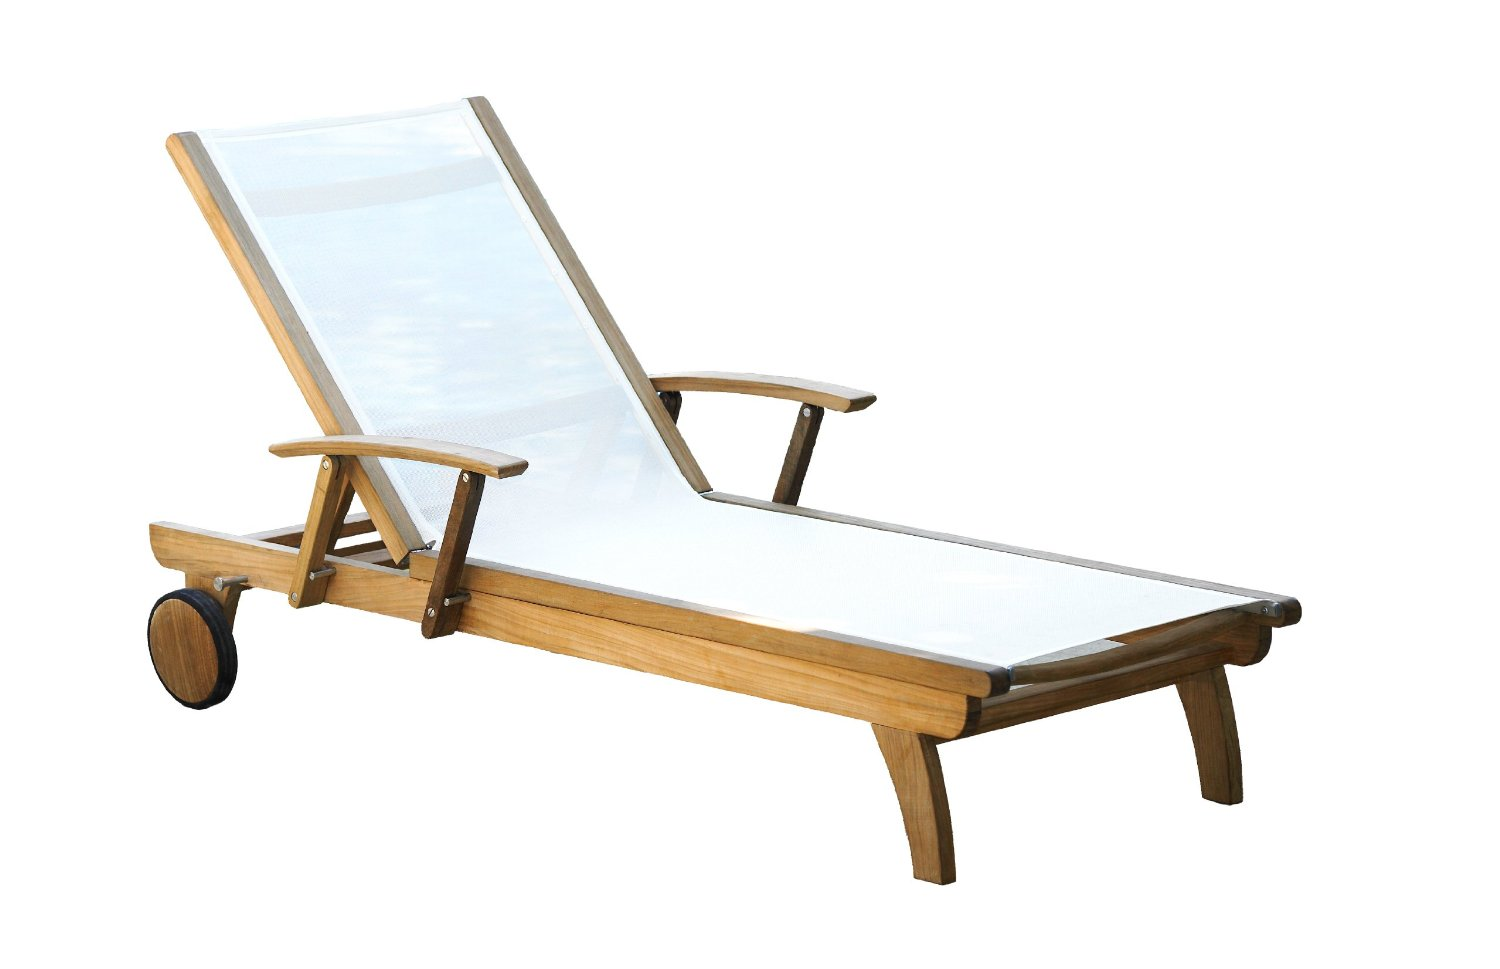 Image of: Teak Lounge Chair Design